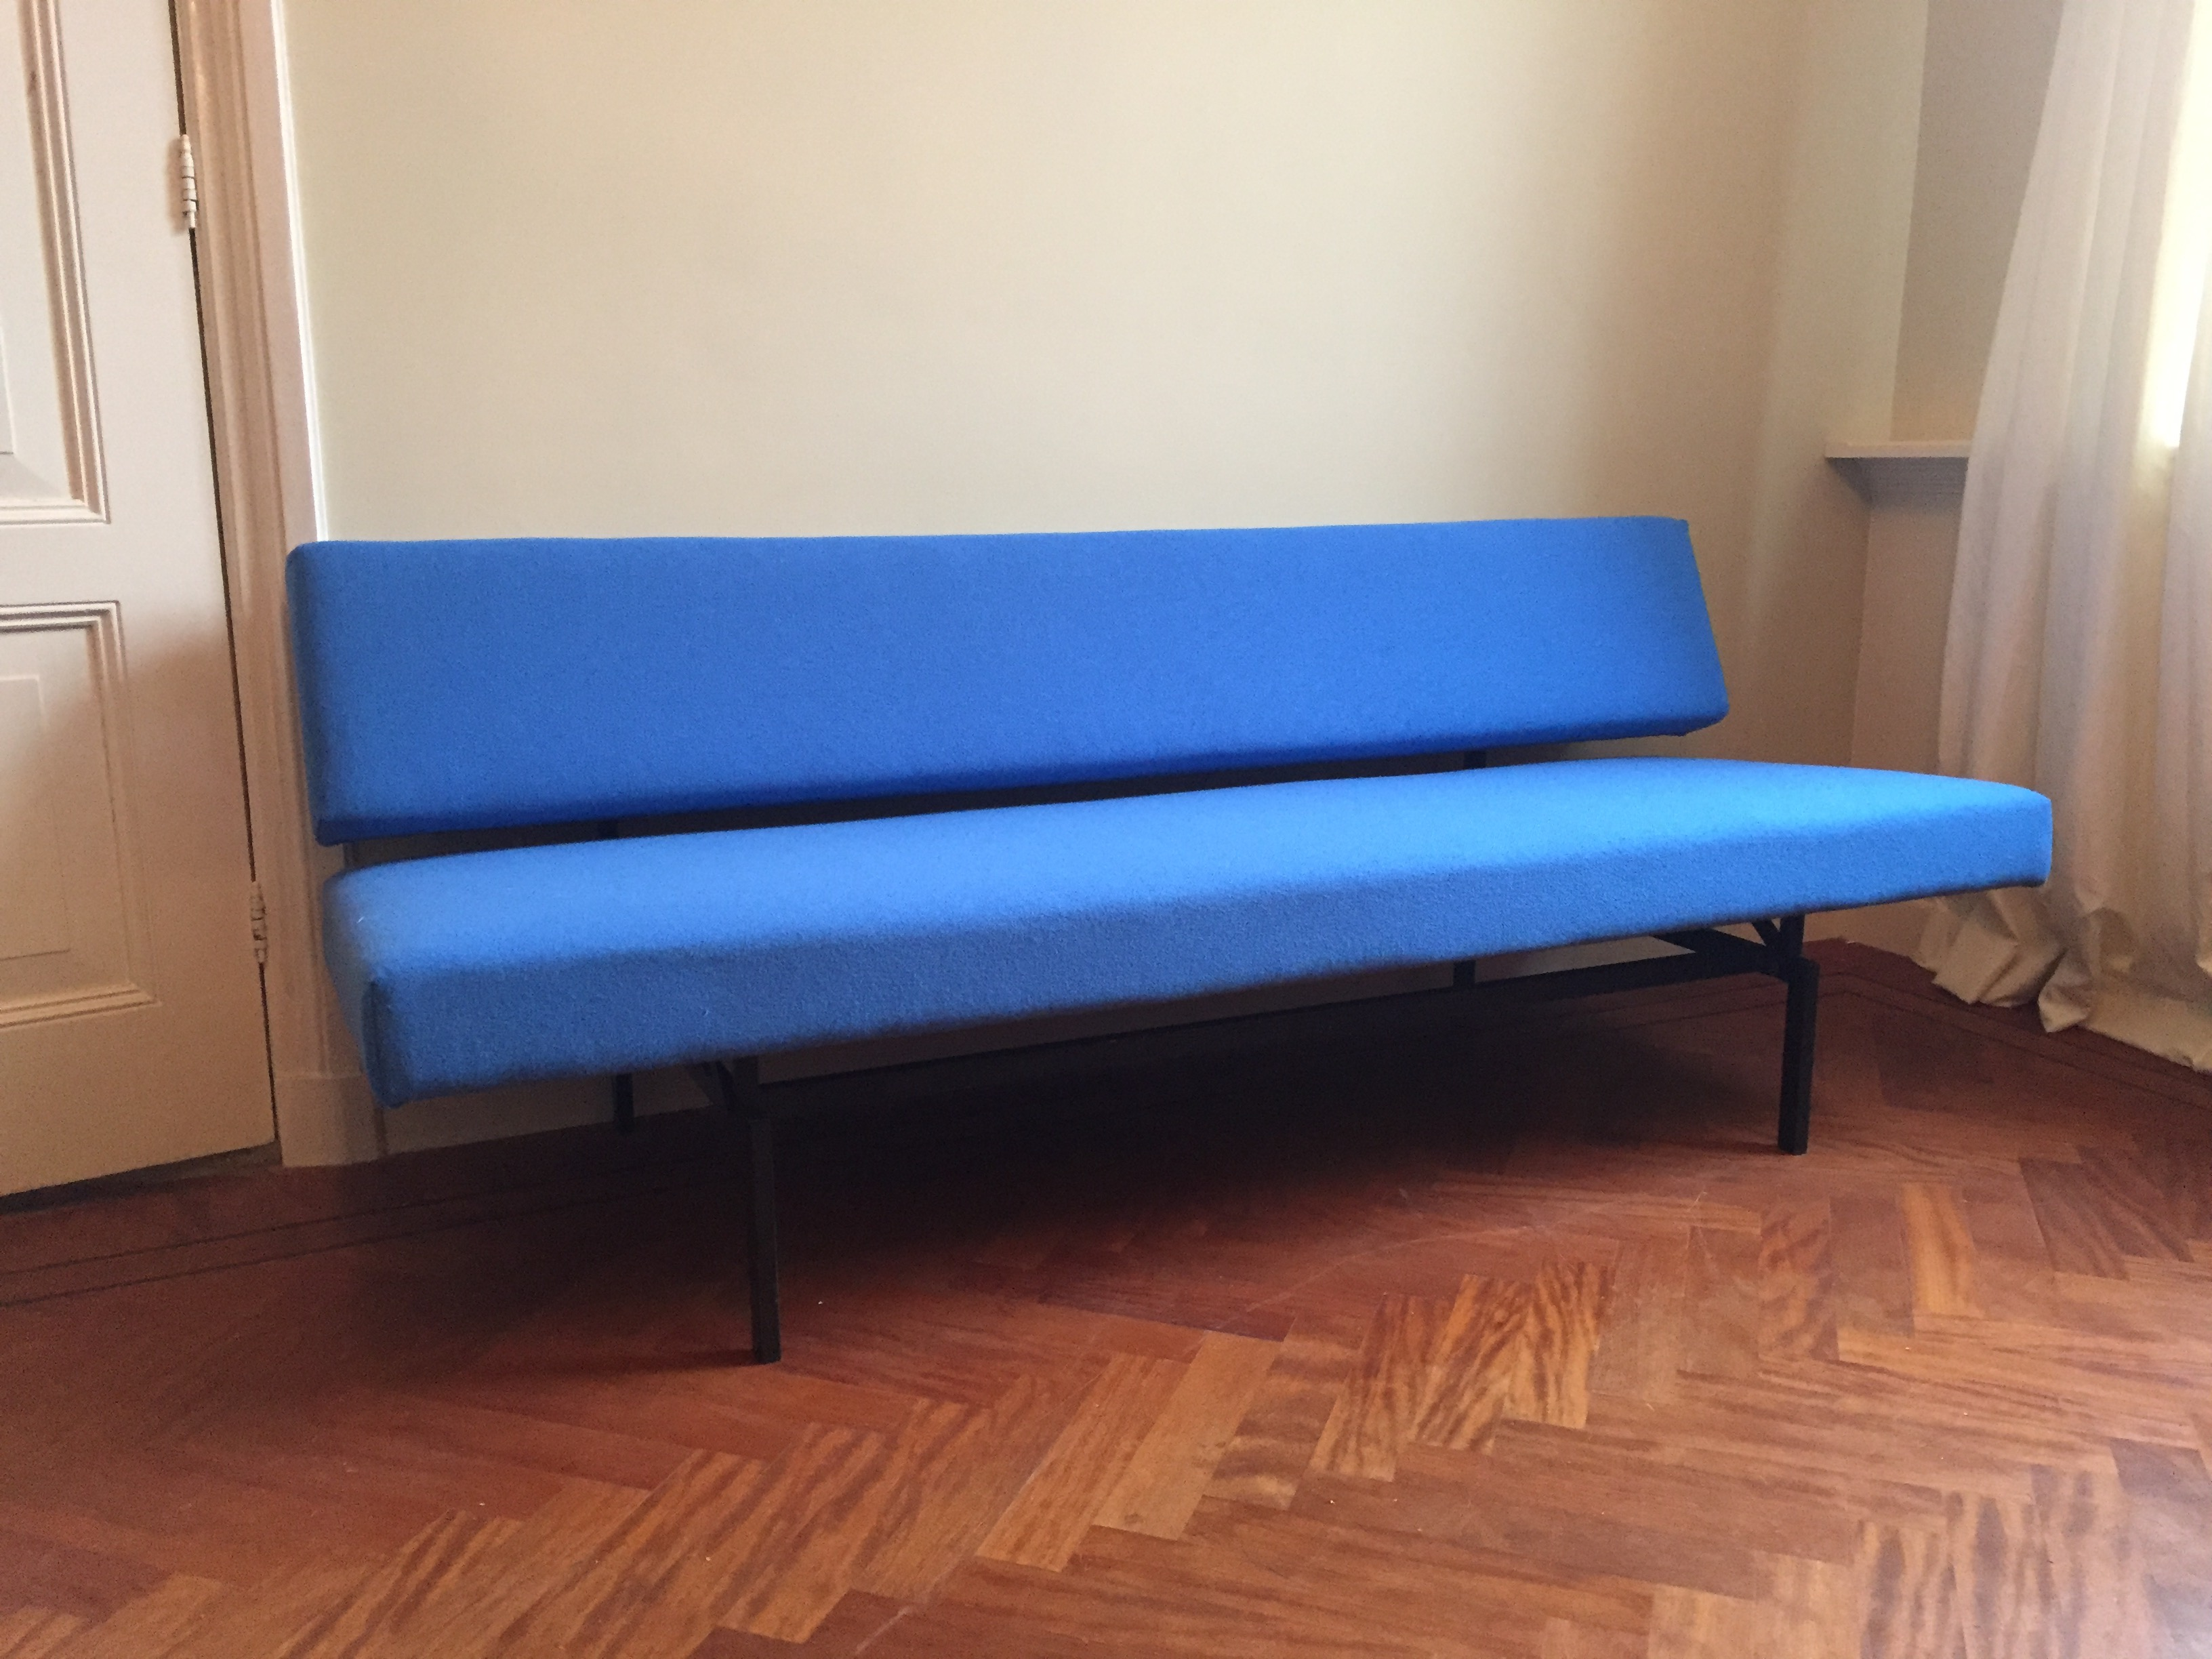 Spectrum (Sleeping) Sofa. Designed by Martin Visser in 1960. Completely restored with Interglobe Gabriel fabric.